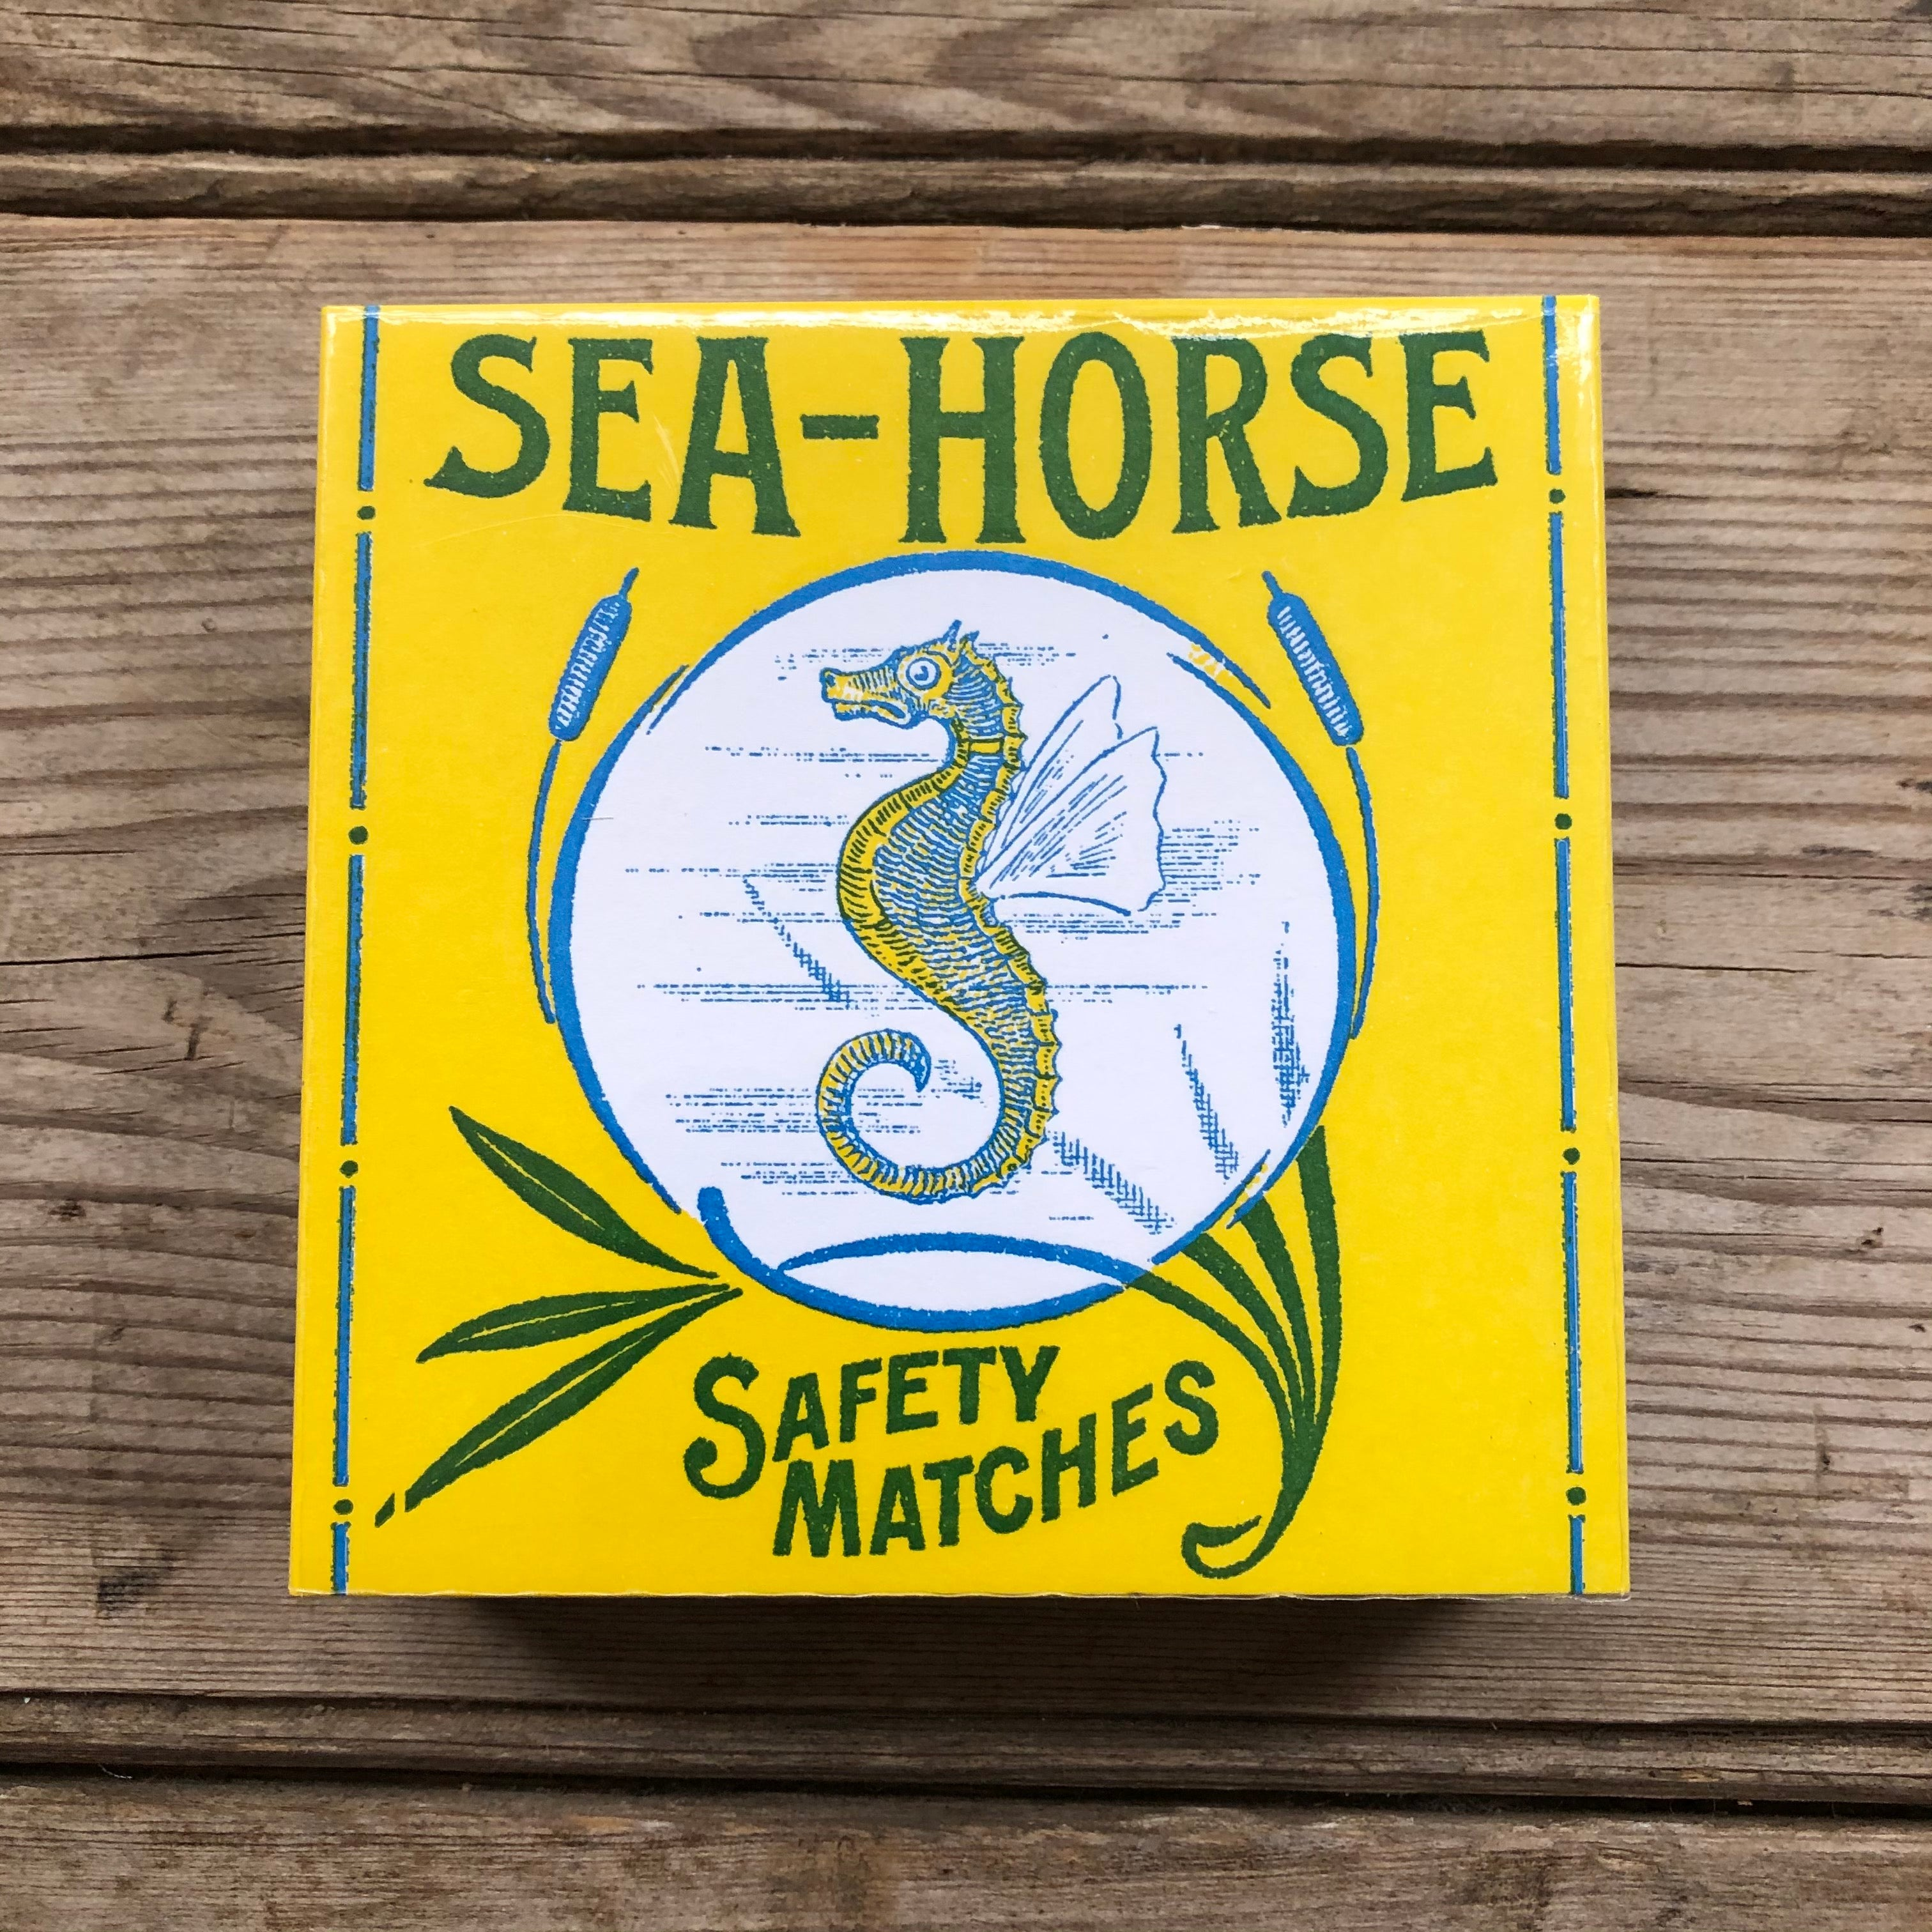 Seahorse Matches